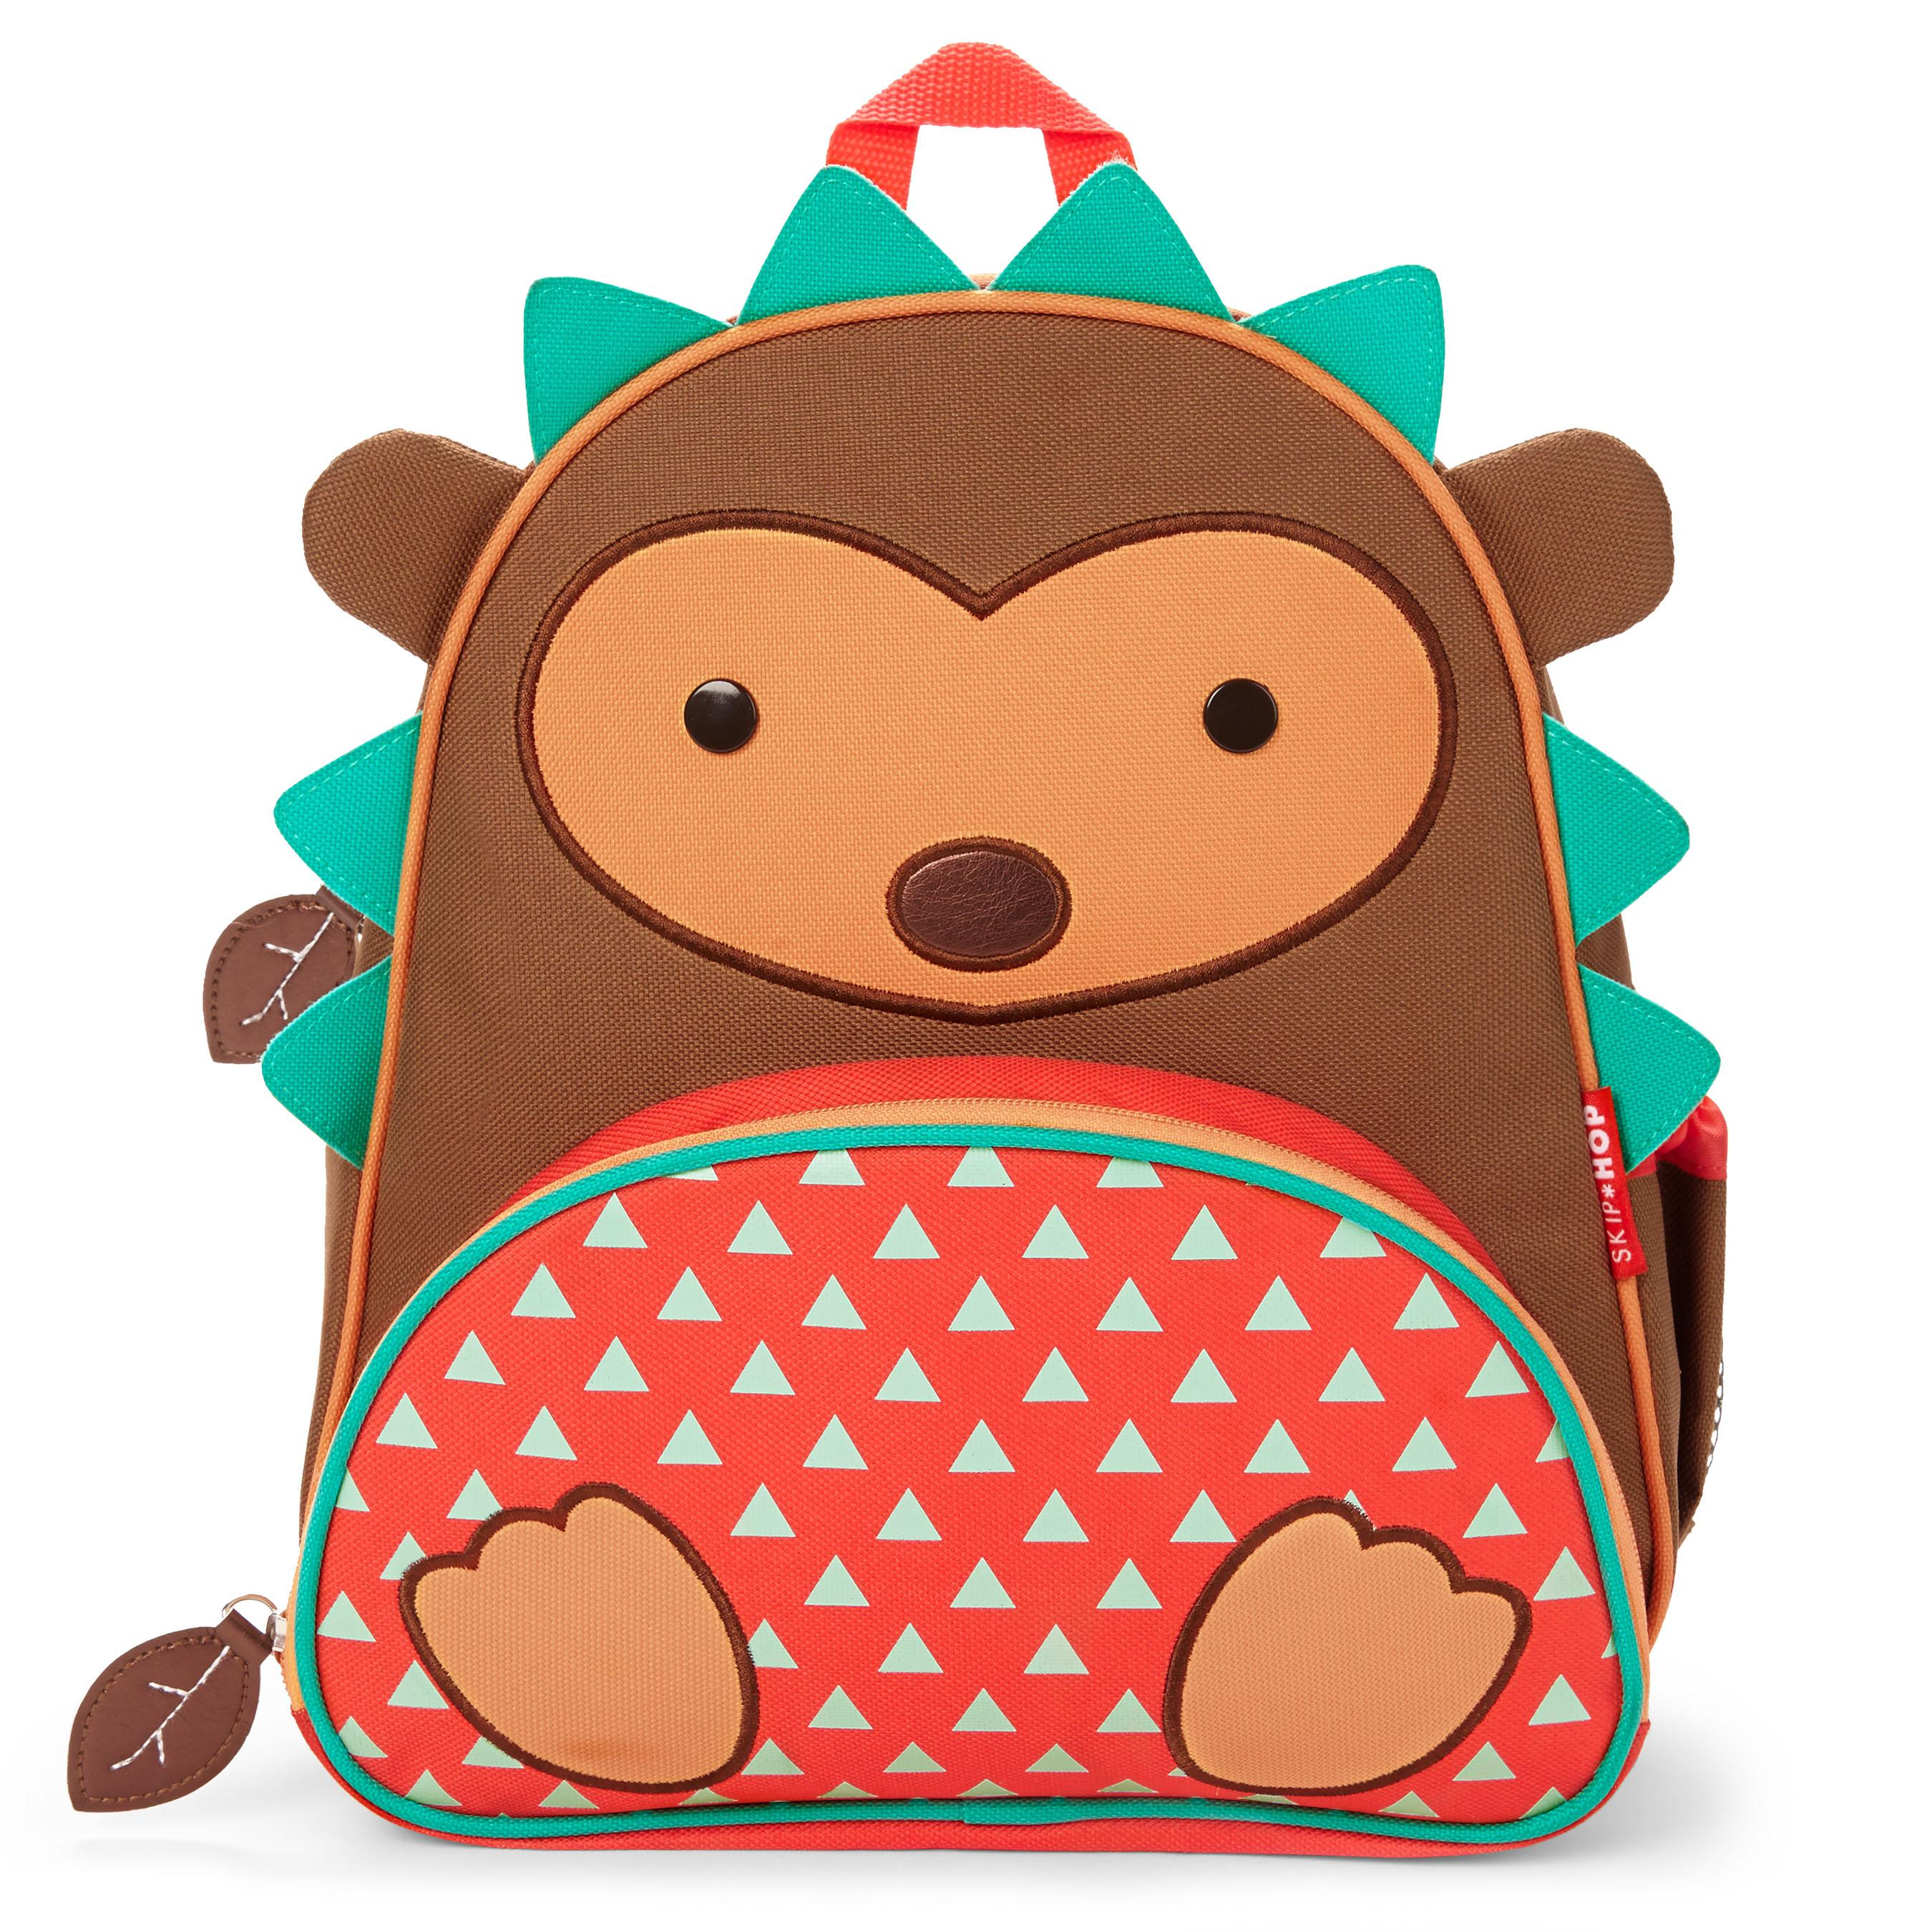 f0241c8e95ed Kids Bags for sale - Baby Bags for Mothers online brands